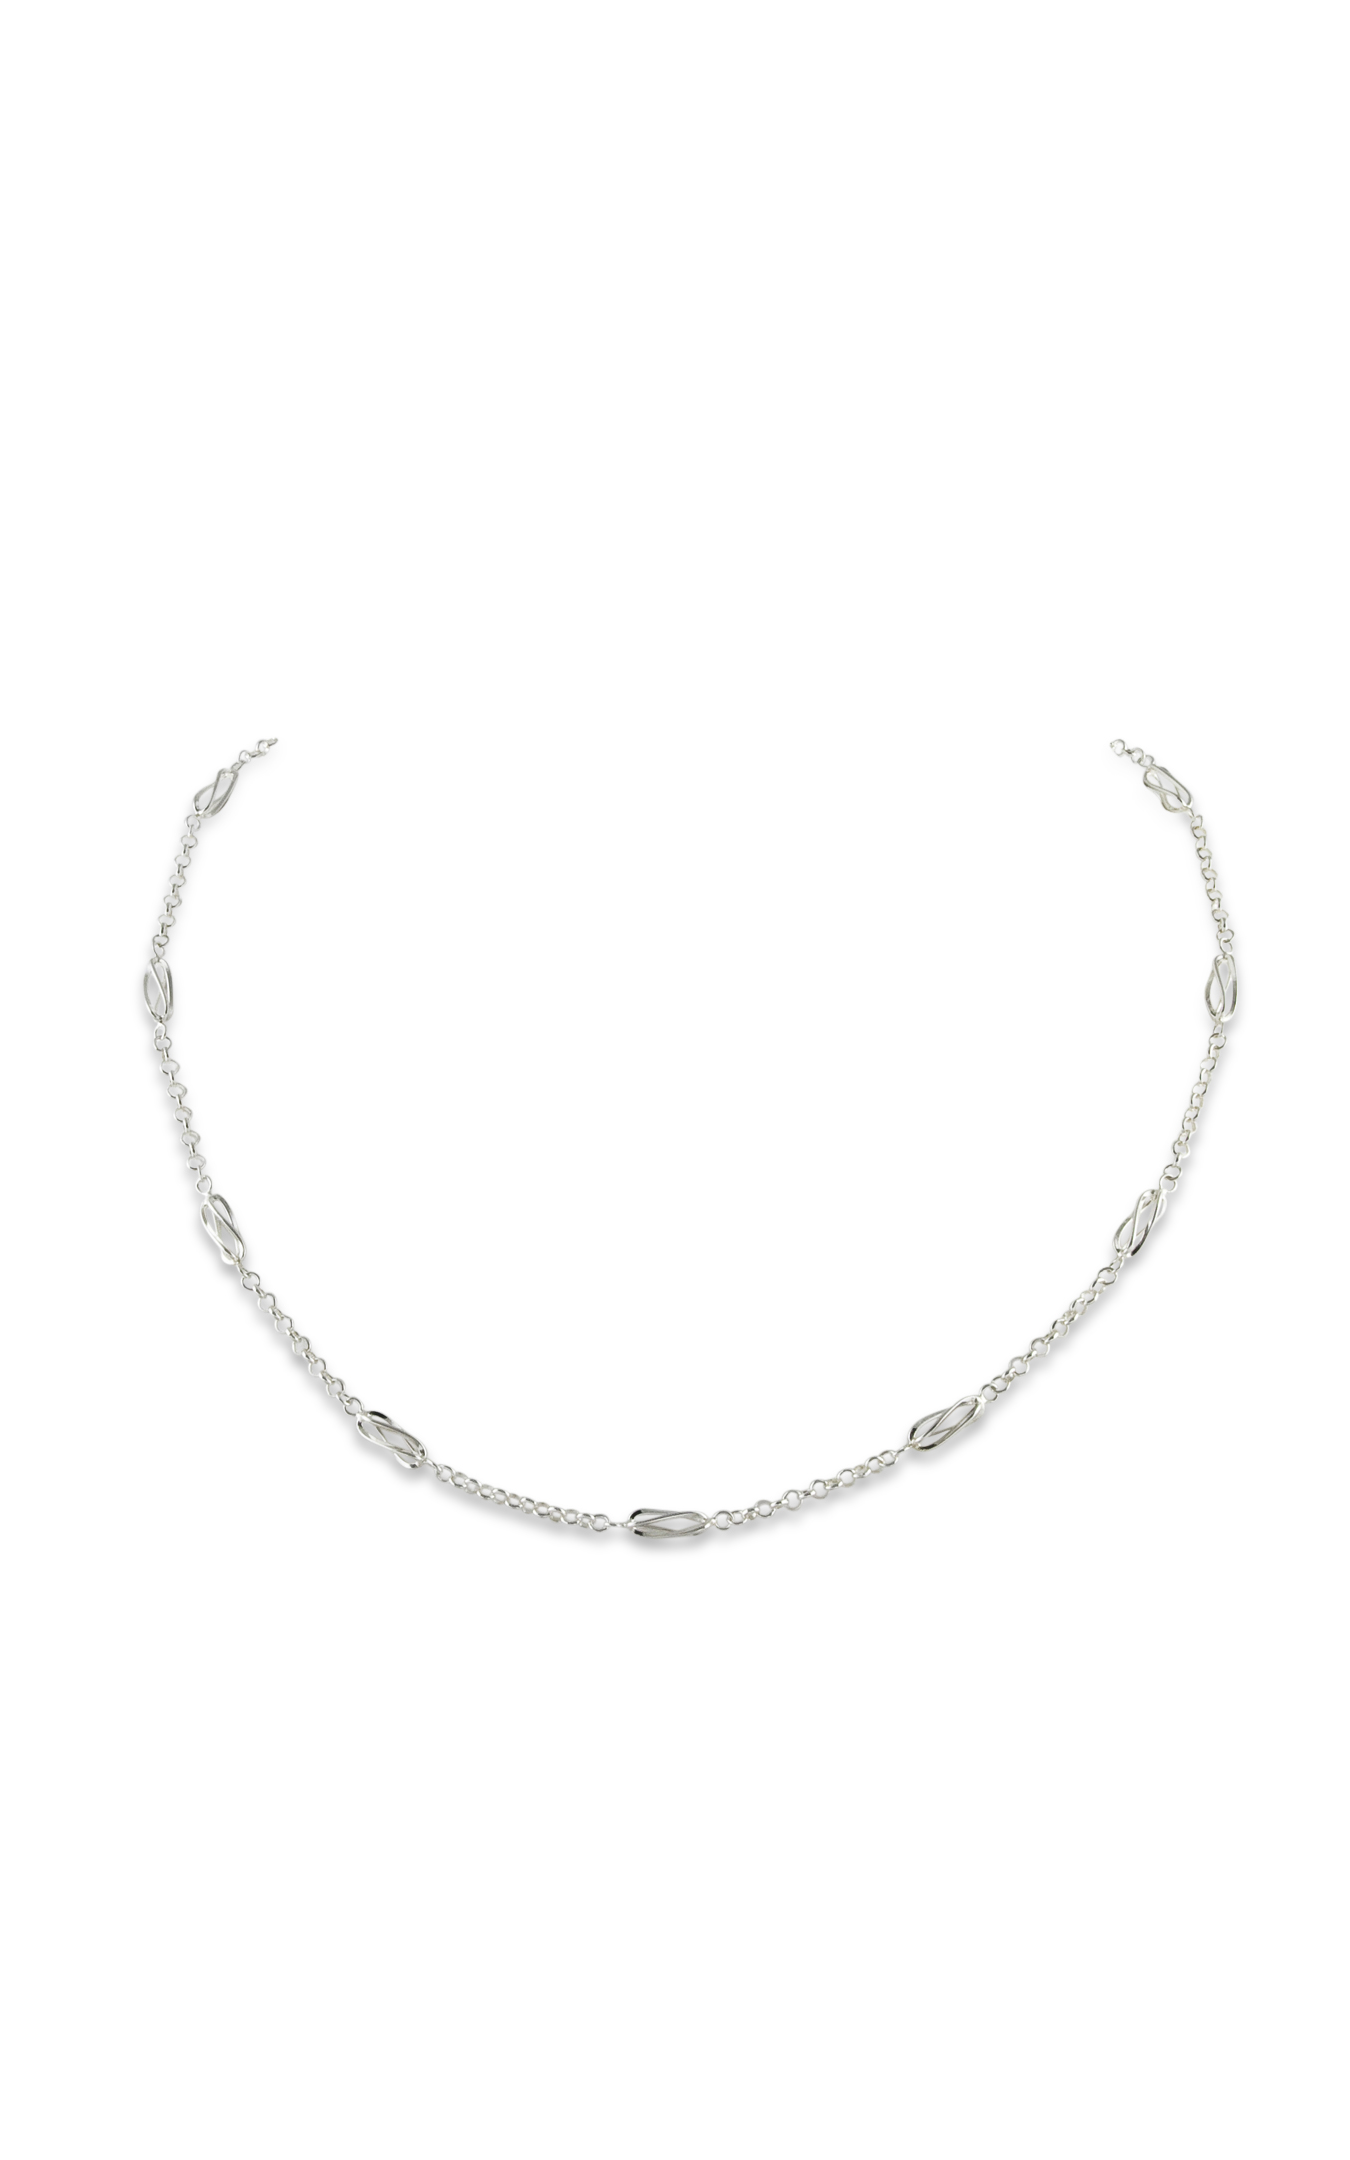 Zina Contemporary Necklace A1306-17 product image